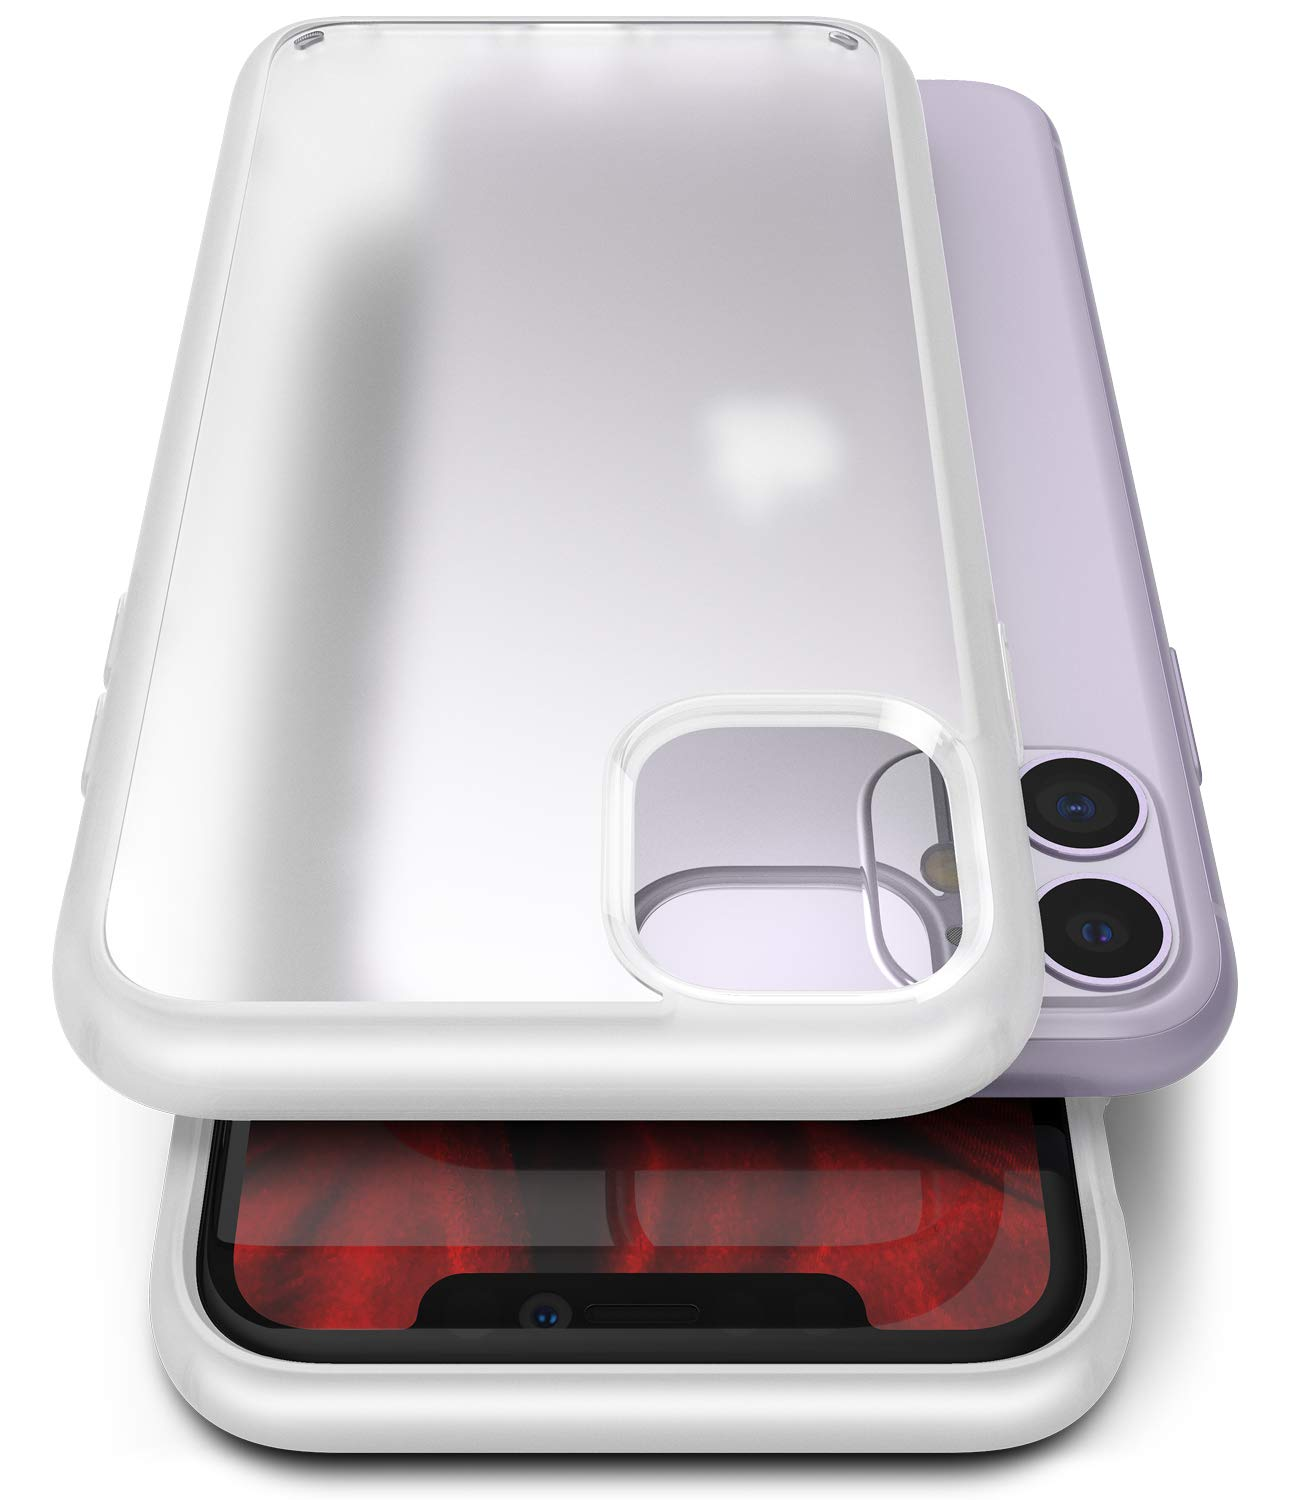 Ringke Fusion No-Smudge Matte Case Designed for iPhone 11, Anti-Fingerprint Frosted PC Case for iPhone 11 - Frost White